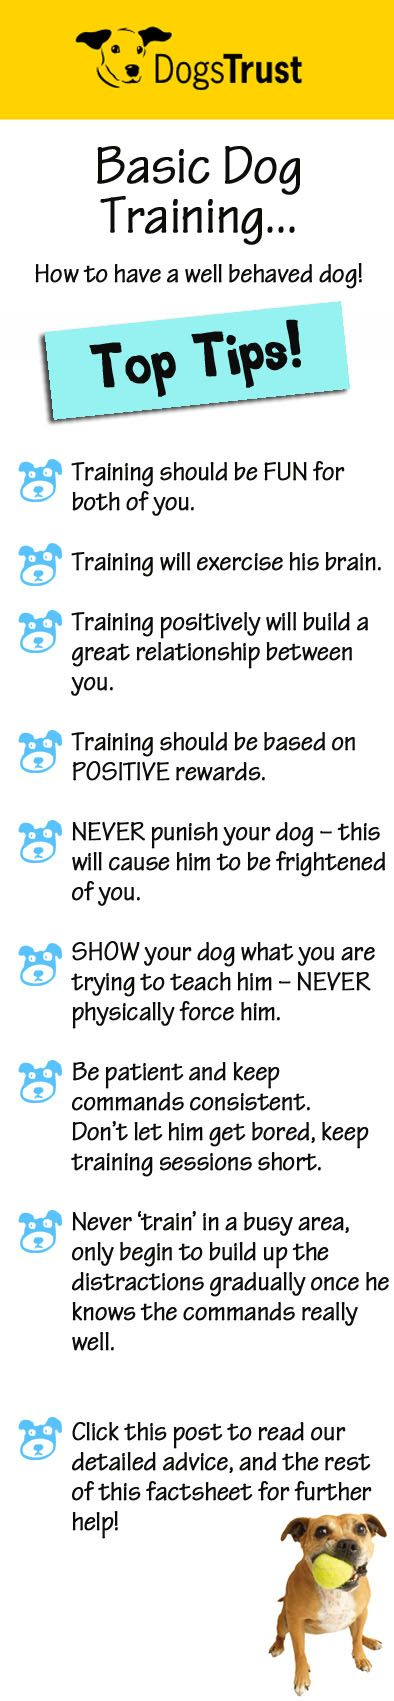 Training can be started at any age, the sooner the better. You can start simple training with your puppy as soon as he has settled into his new home! Follow our top tips for some grrreat ideas, on how to make your new canine companion the best behaved dog in the park! WOOF!